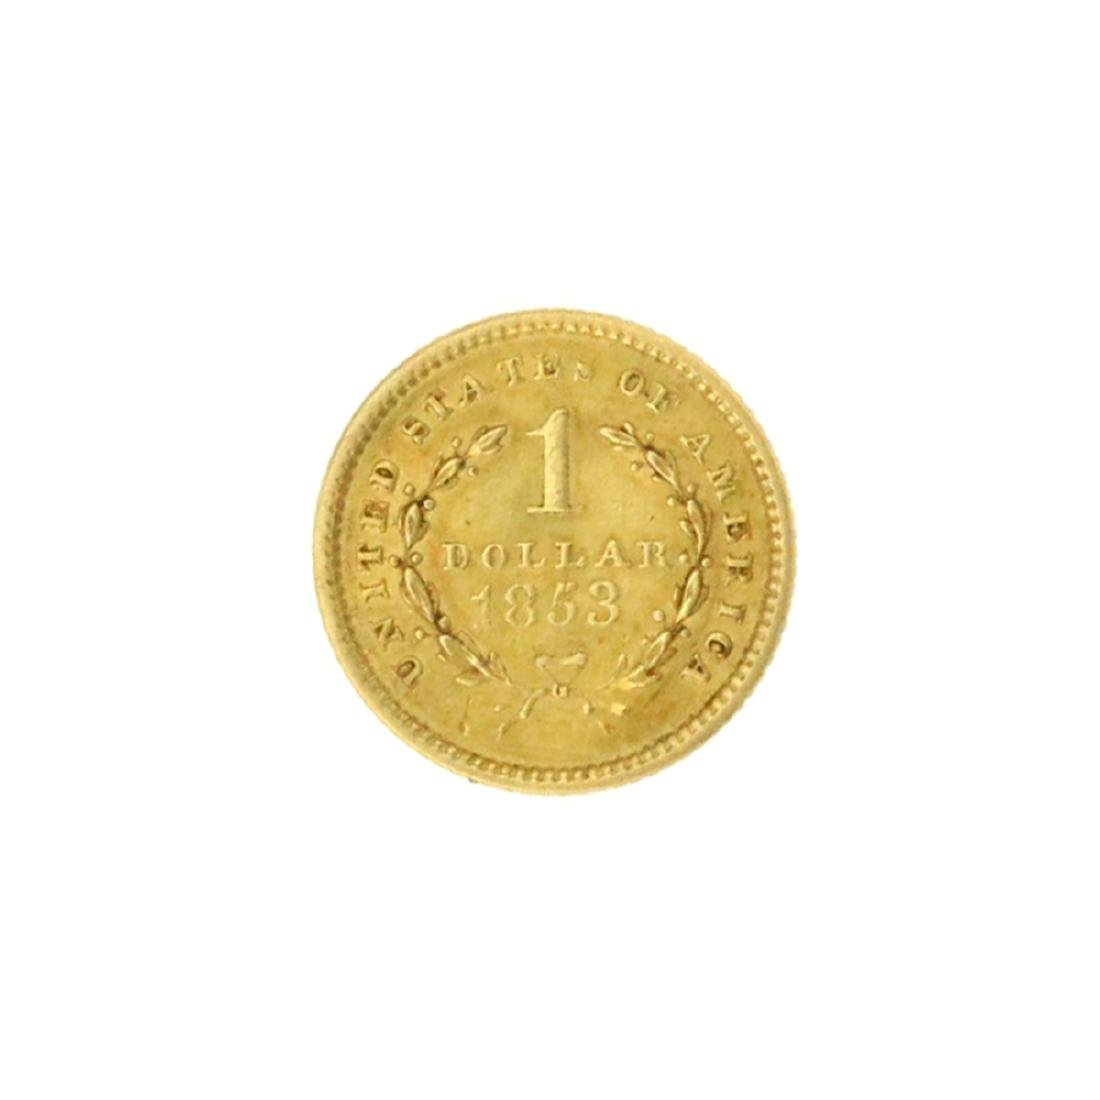 Extremely Rare 1853 $1 U.S. Liberty Head Gold Coin - 2